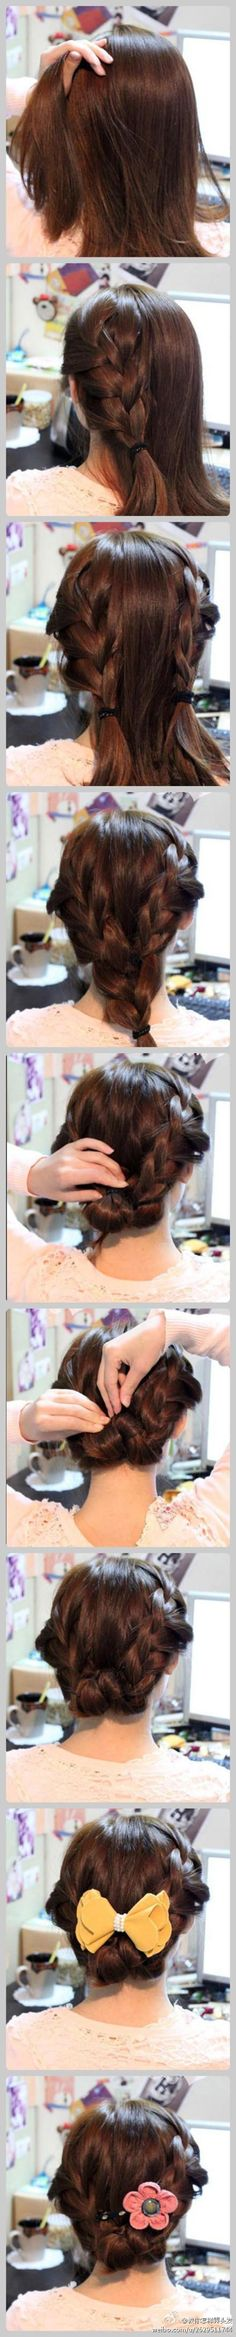 French braid up-do. My hair might be long enough for this.